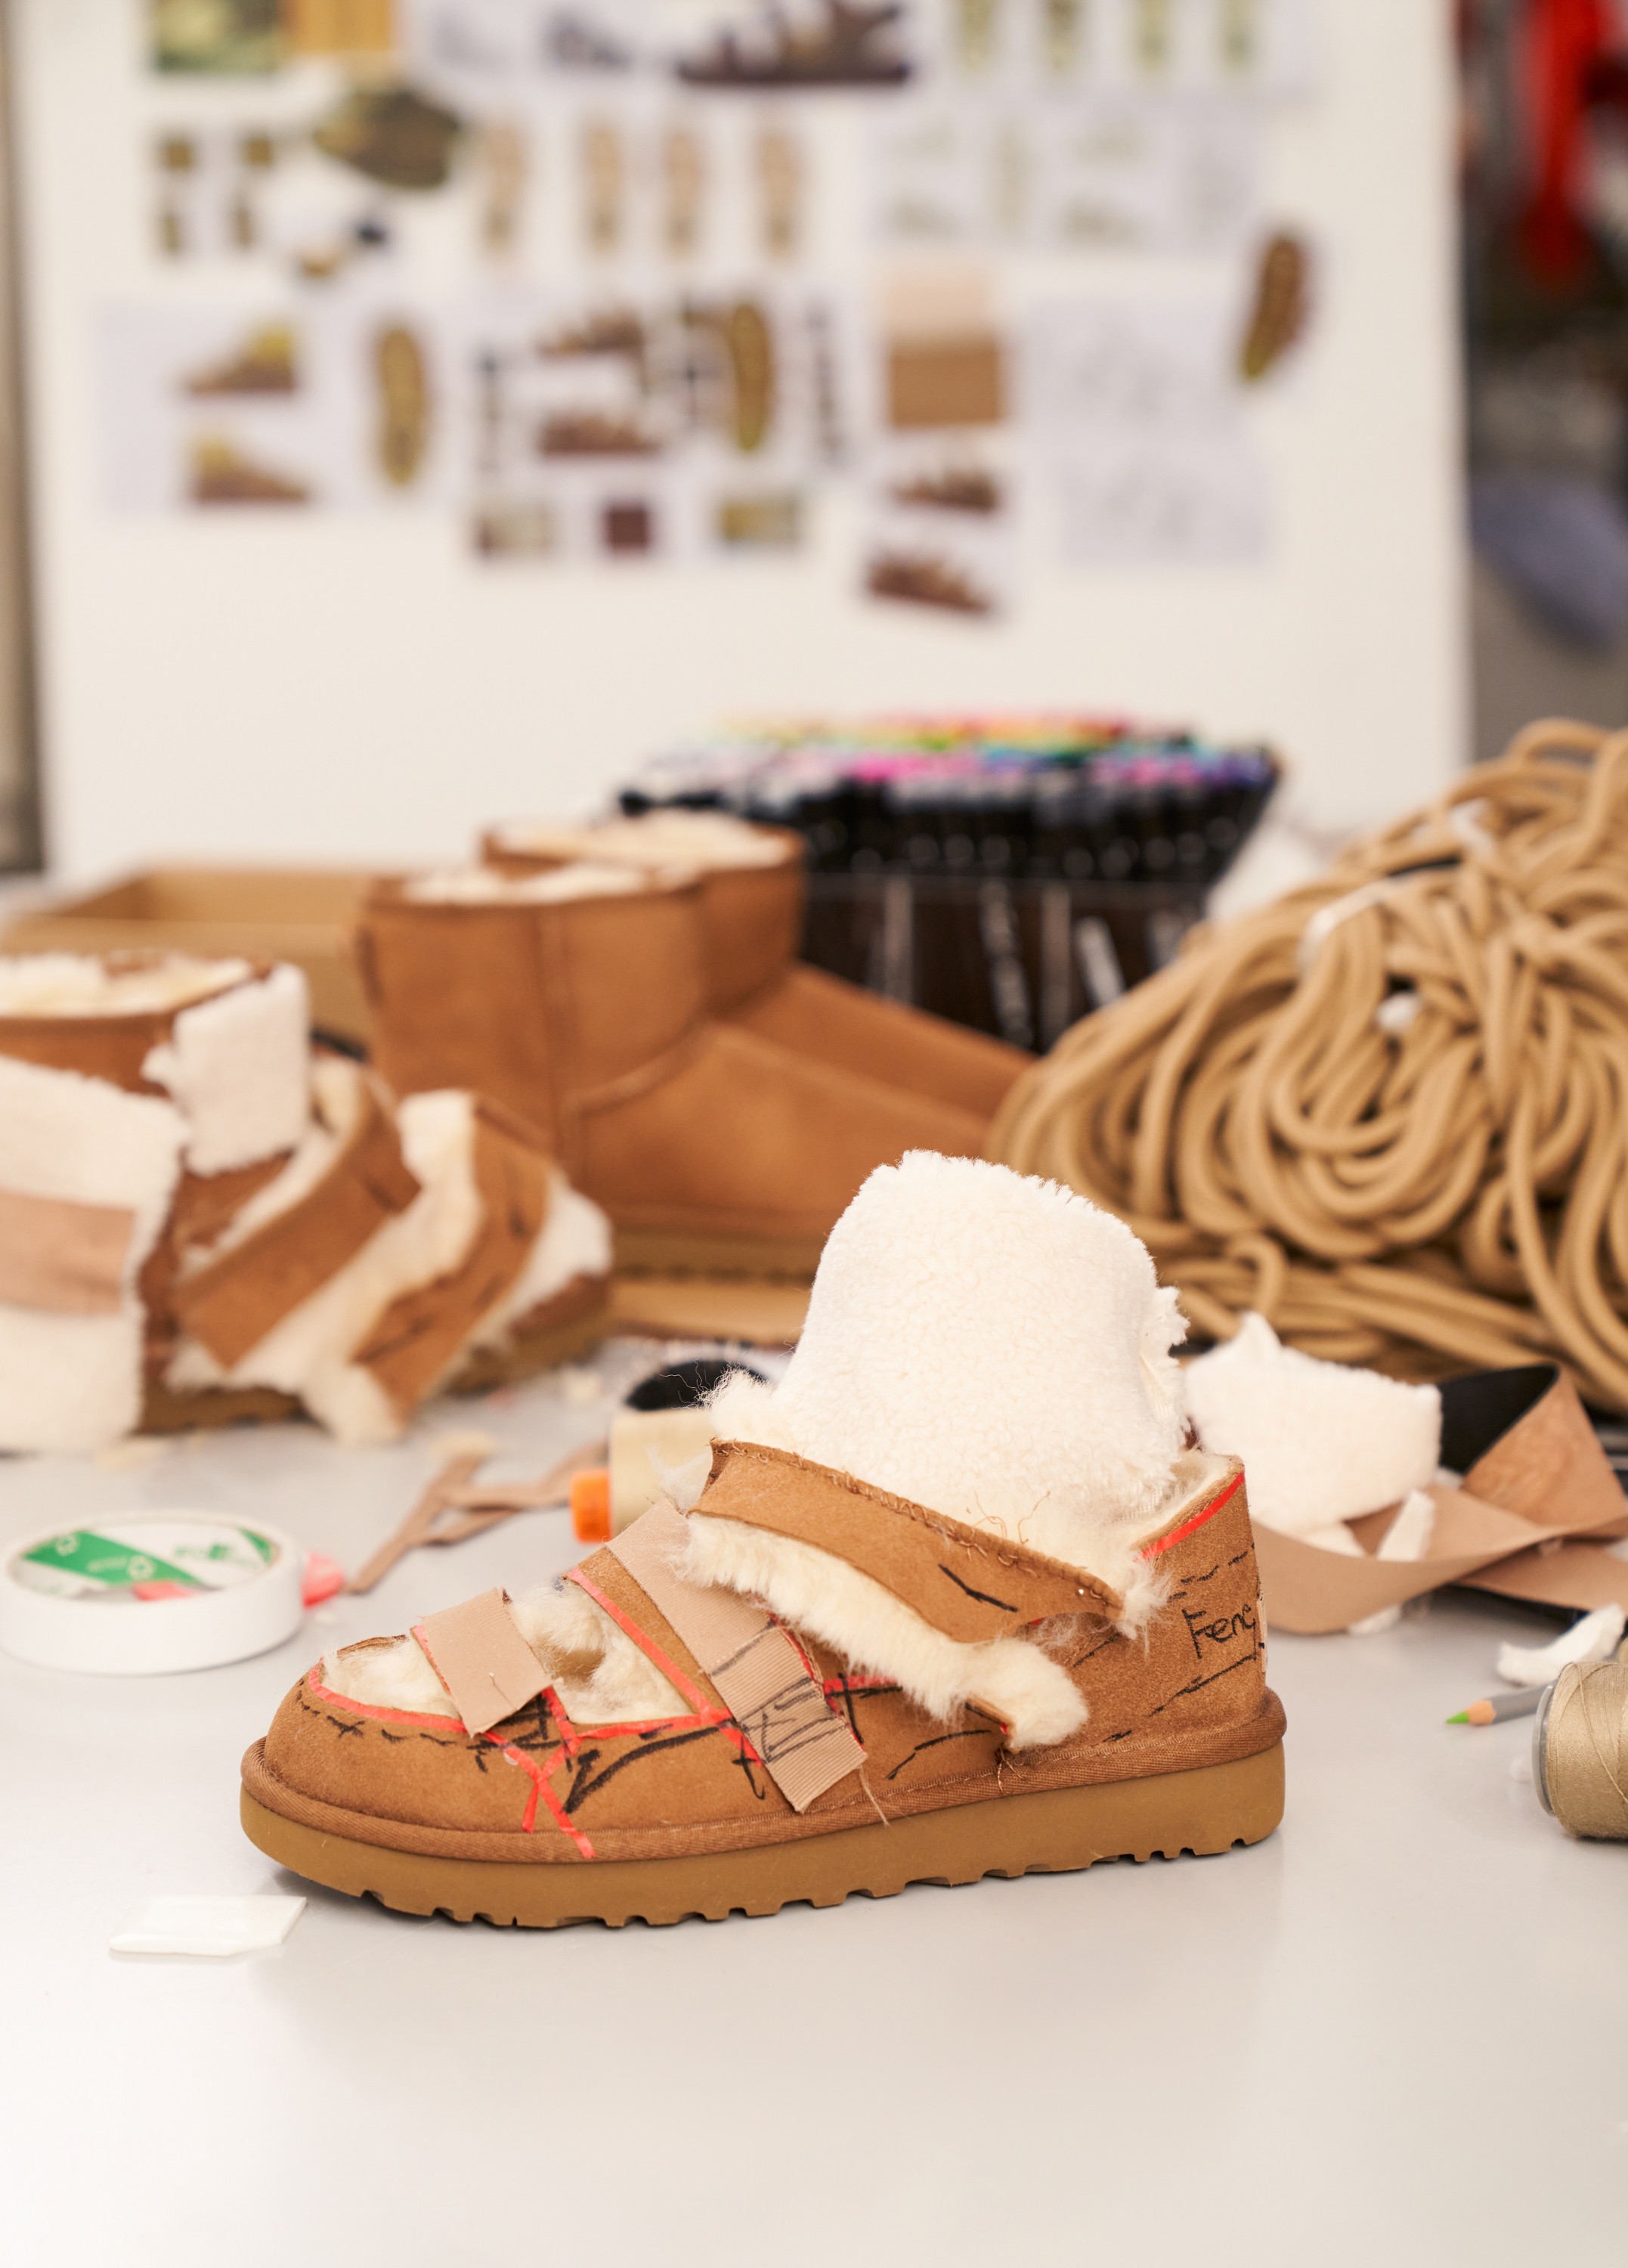 Ugg boots designed by Feng Chen Wang